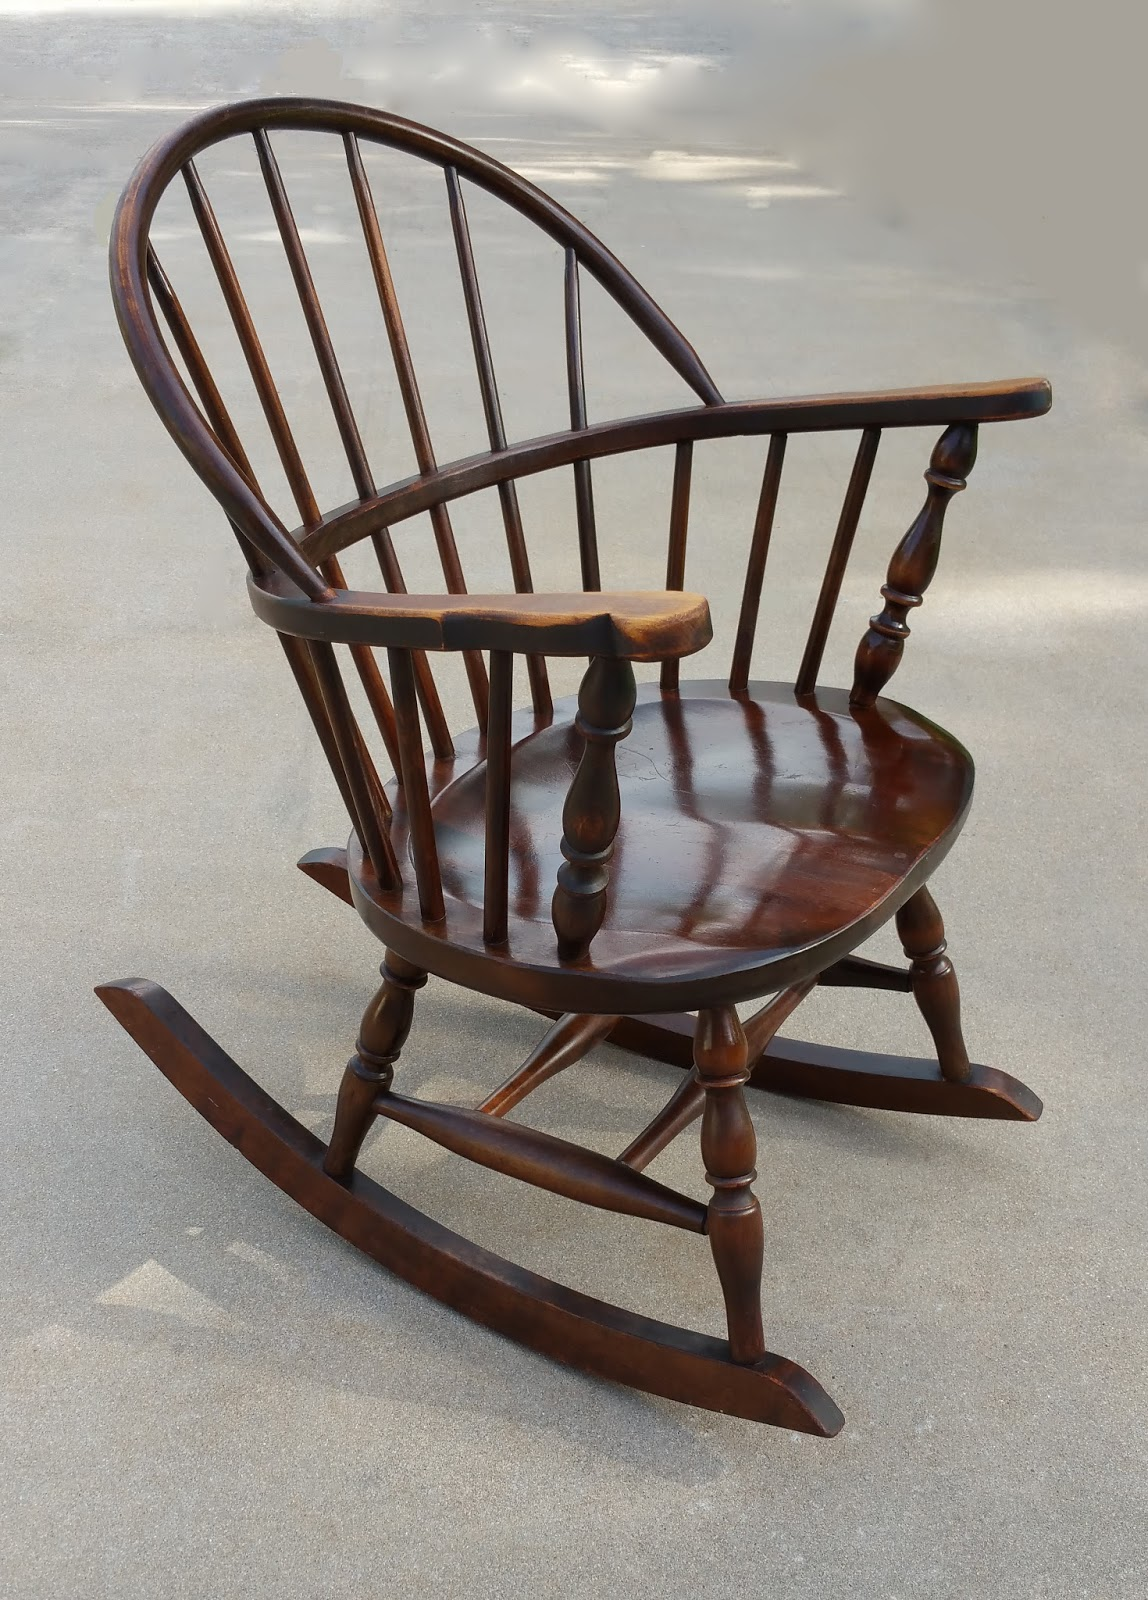 vintage rocking chairs indoor lounge chair antique windsor furniture